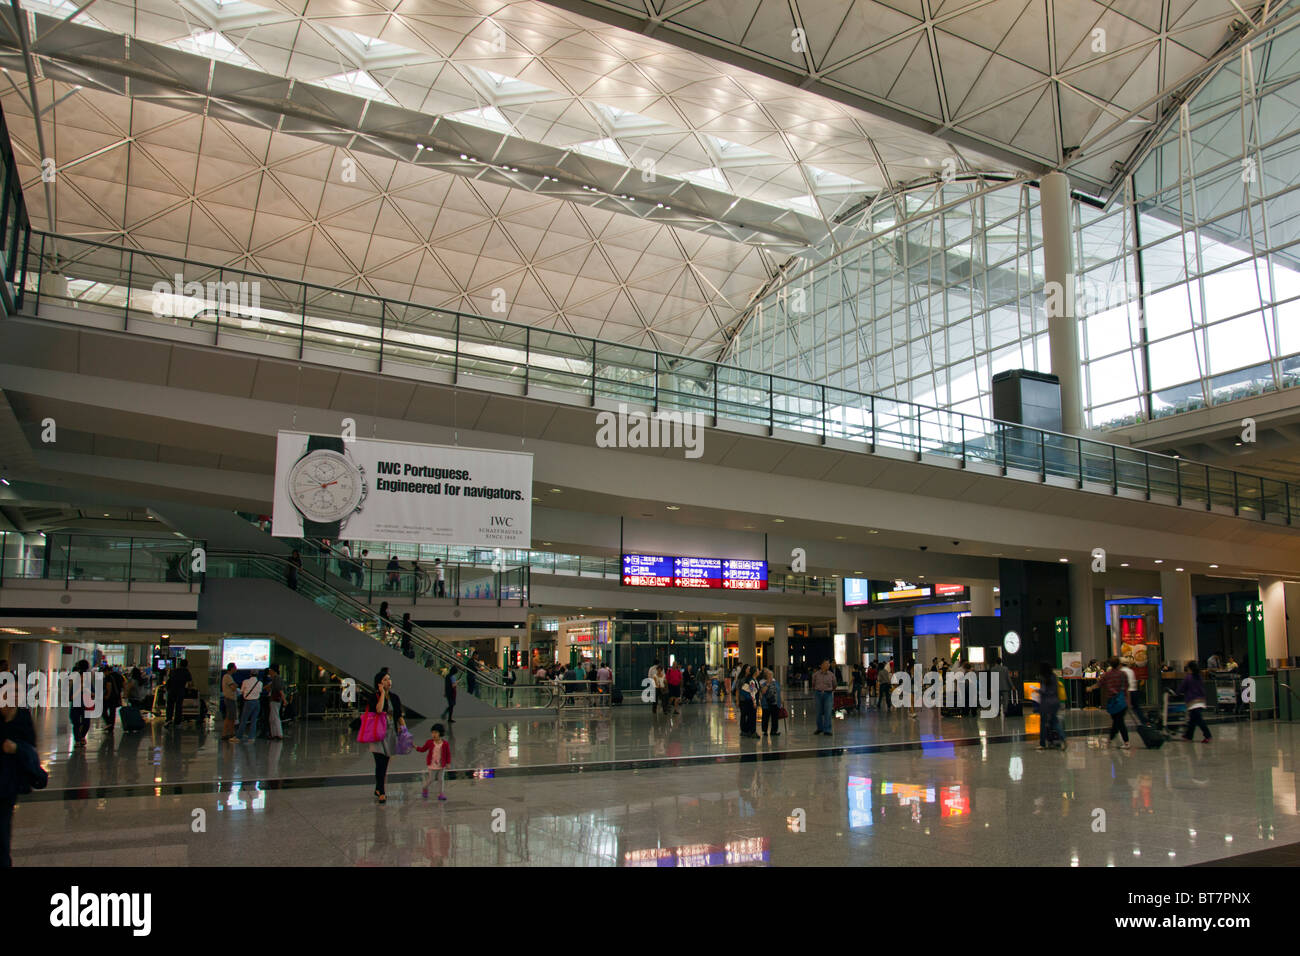 Hong Kong International Airport is the main airport in Hong Kong. It is colloquially known as Chek Lap Kok inside Stock Photo